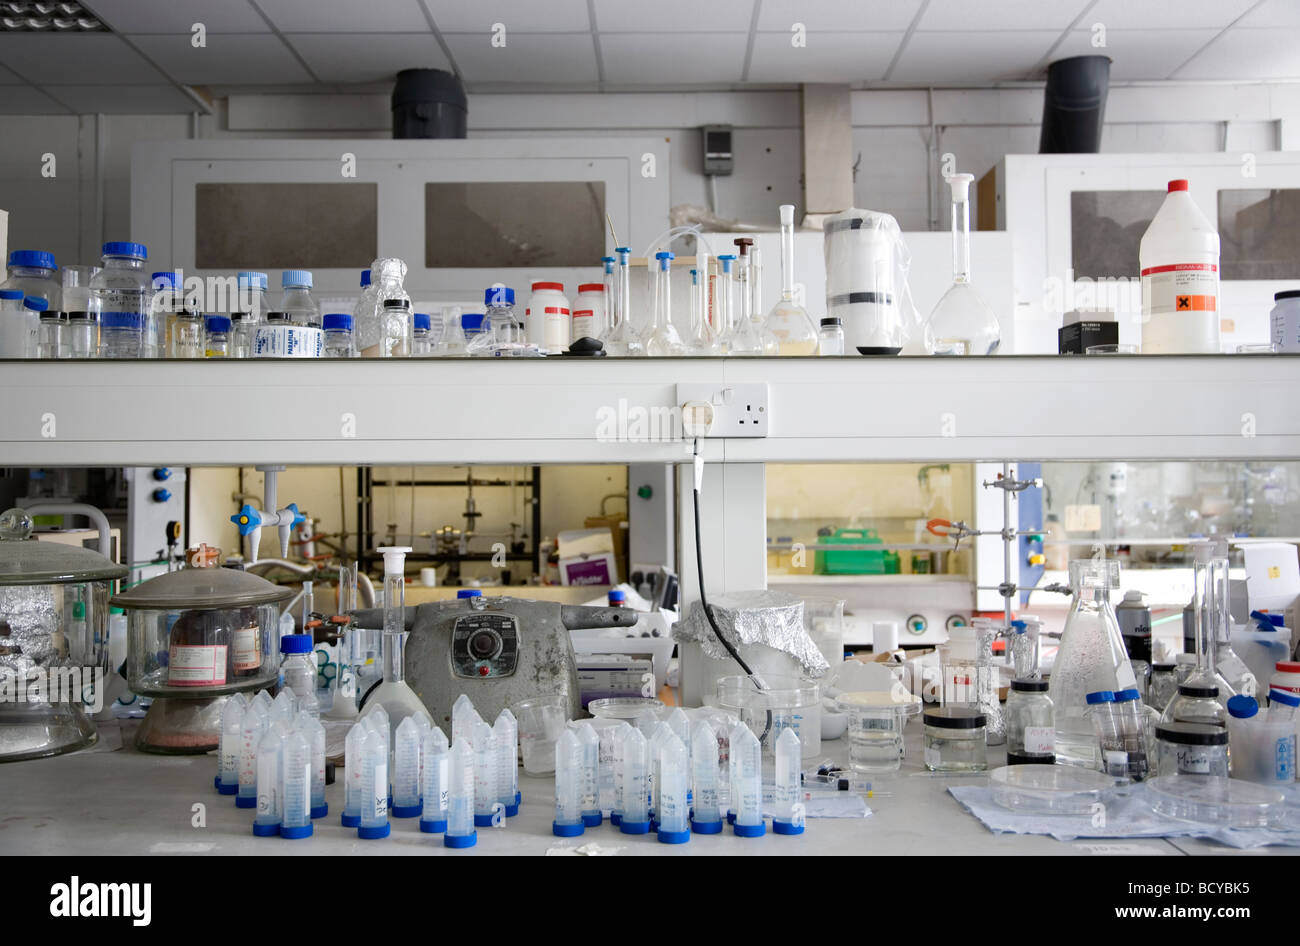 Busy lab shelves in Laboratory. - Stock Image